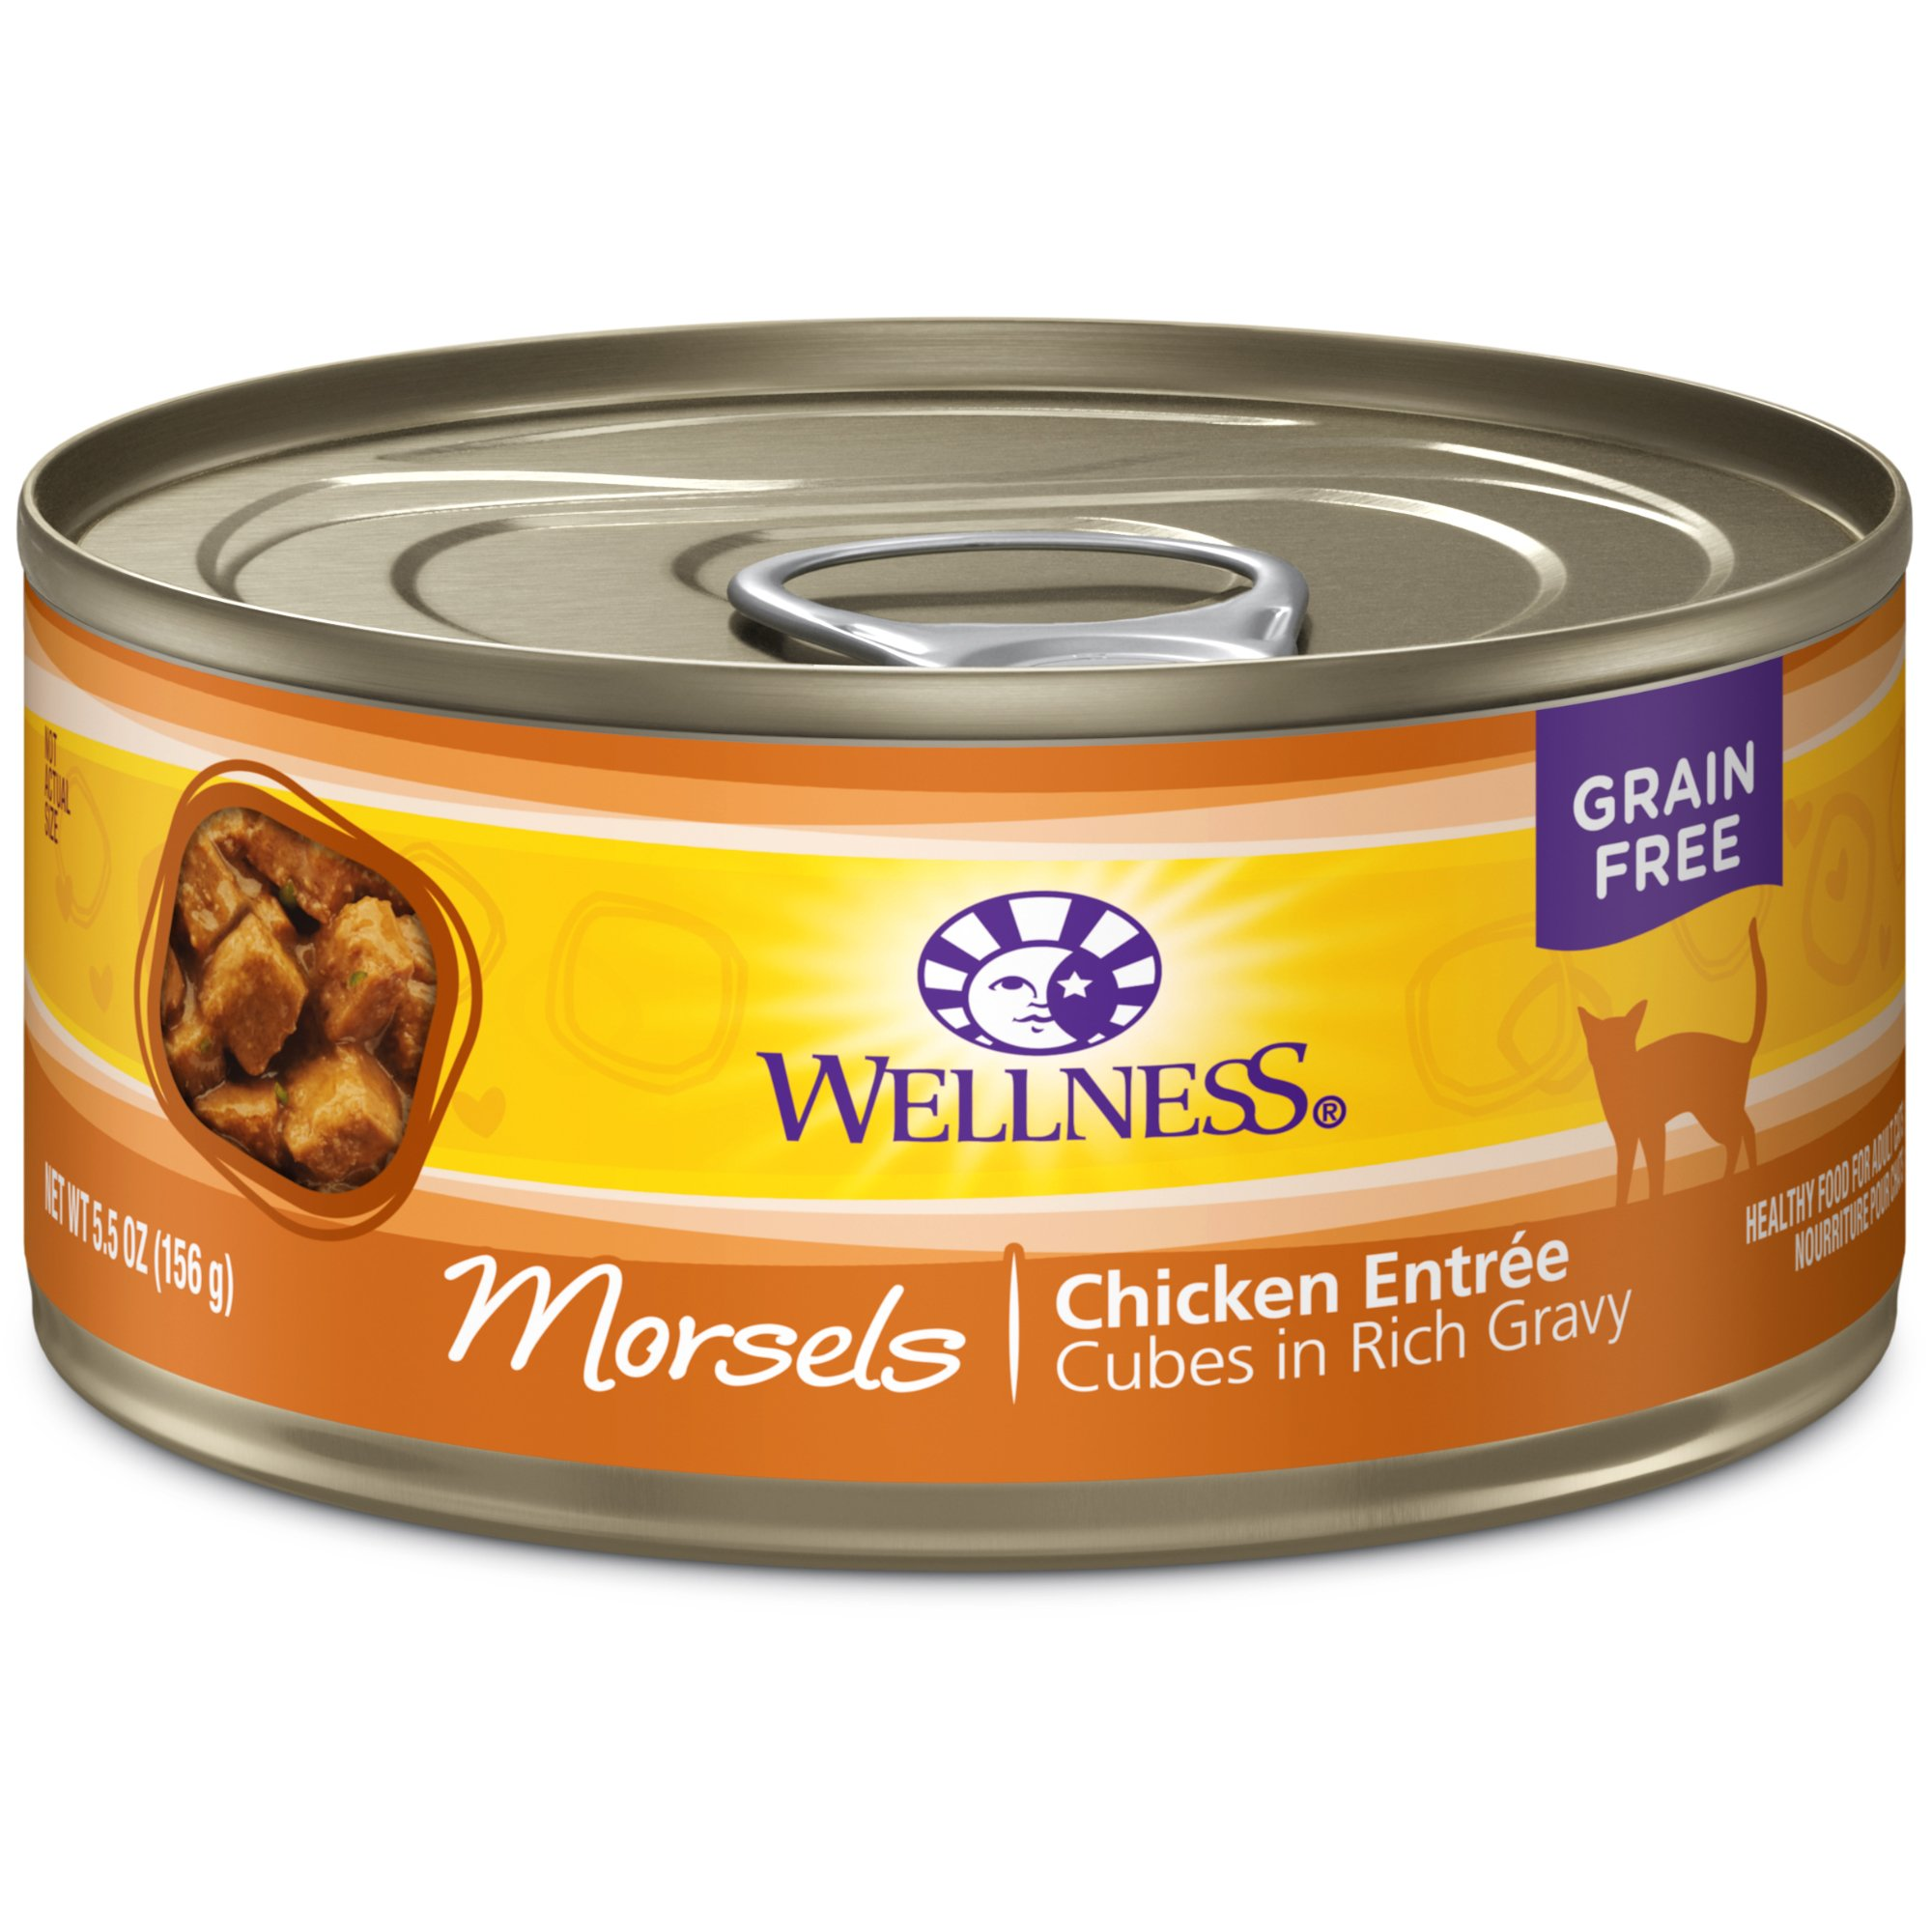 Wellness Complete Health Natural Grain Free Wet Canned Cat Food, Morsels Chicken Entrée, 5.5-Ounce Can (Pack Of 24) by Wellness Natural Pet Food